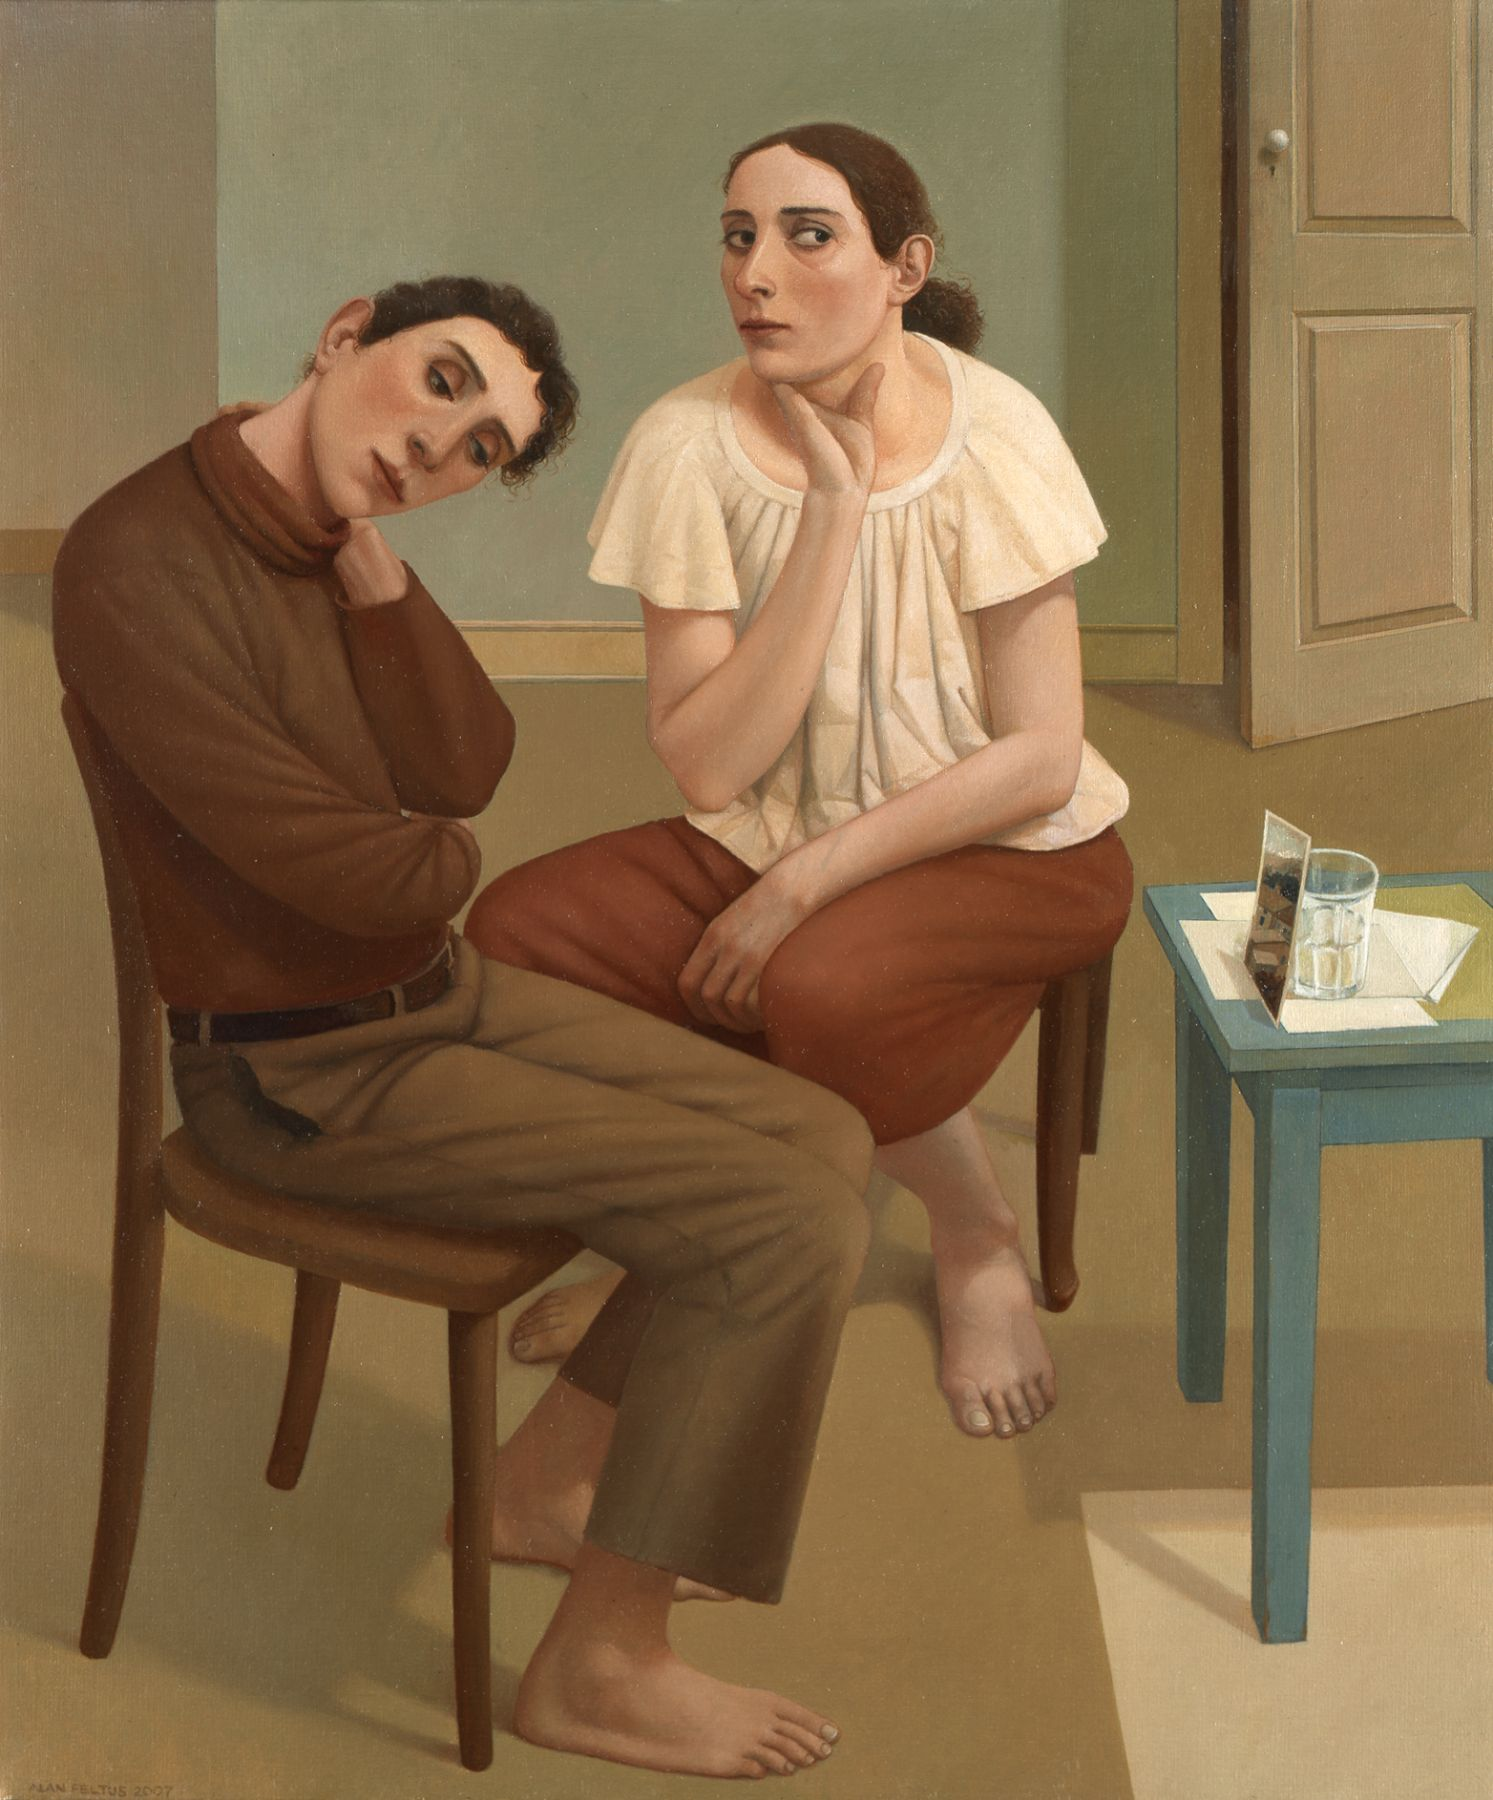 alan feltus, The Best of Times, 2007, oil on canvas, 47 1/4 x 39 1/4 inches